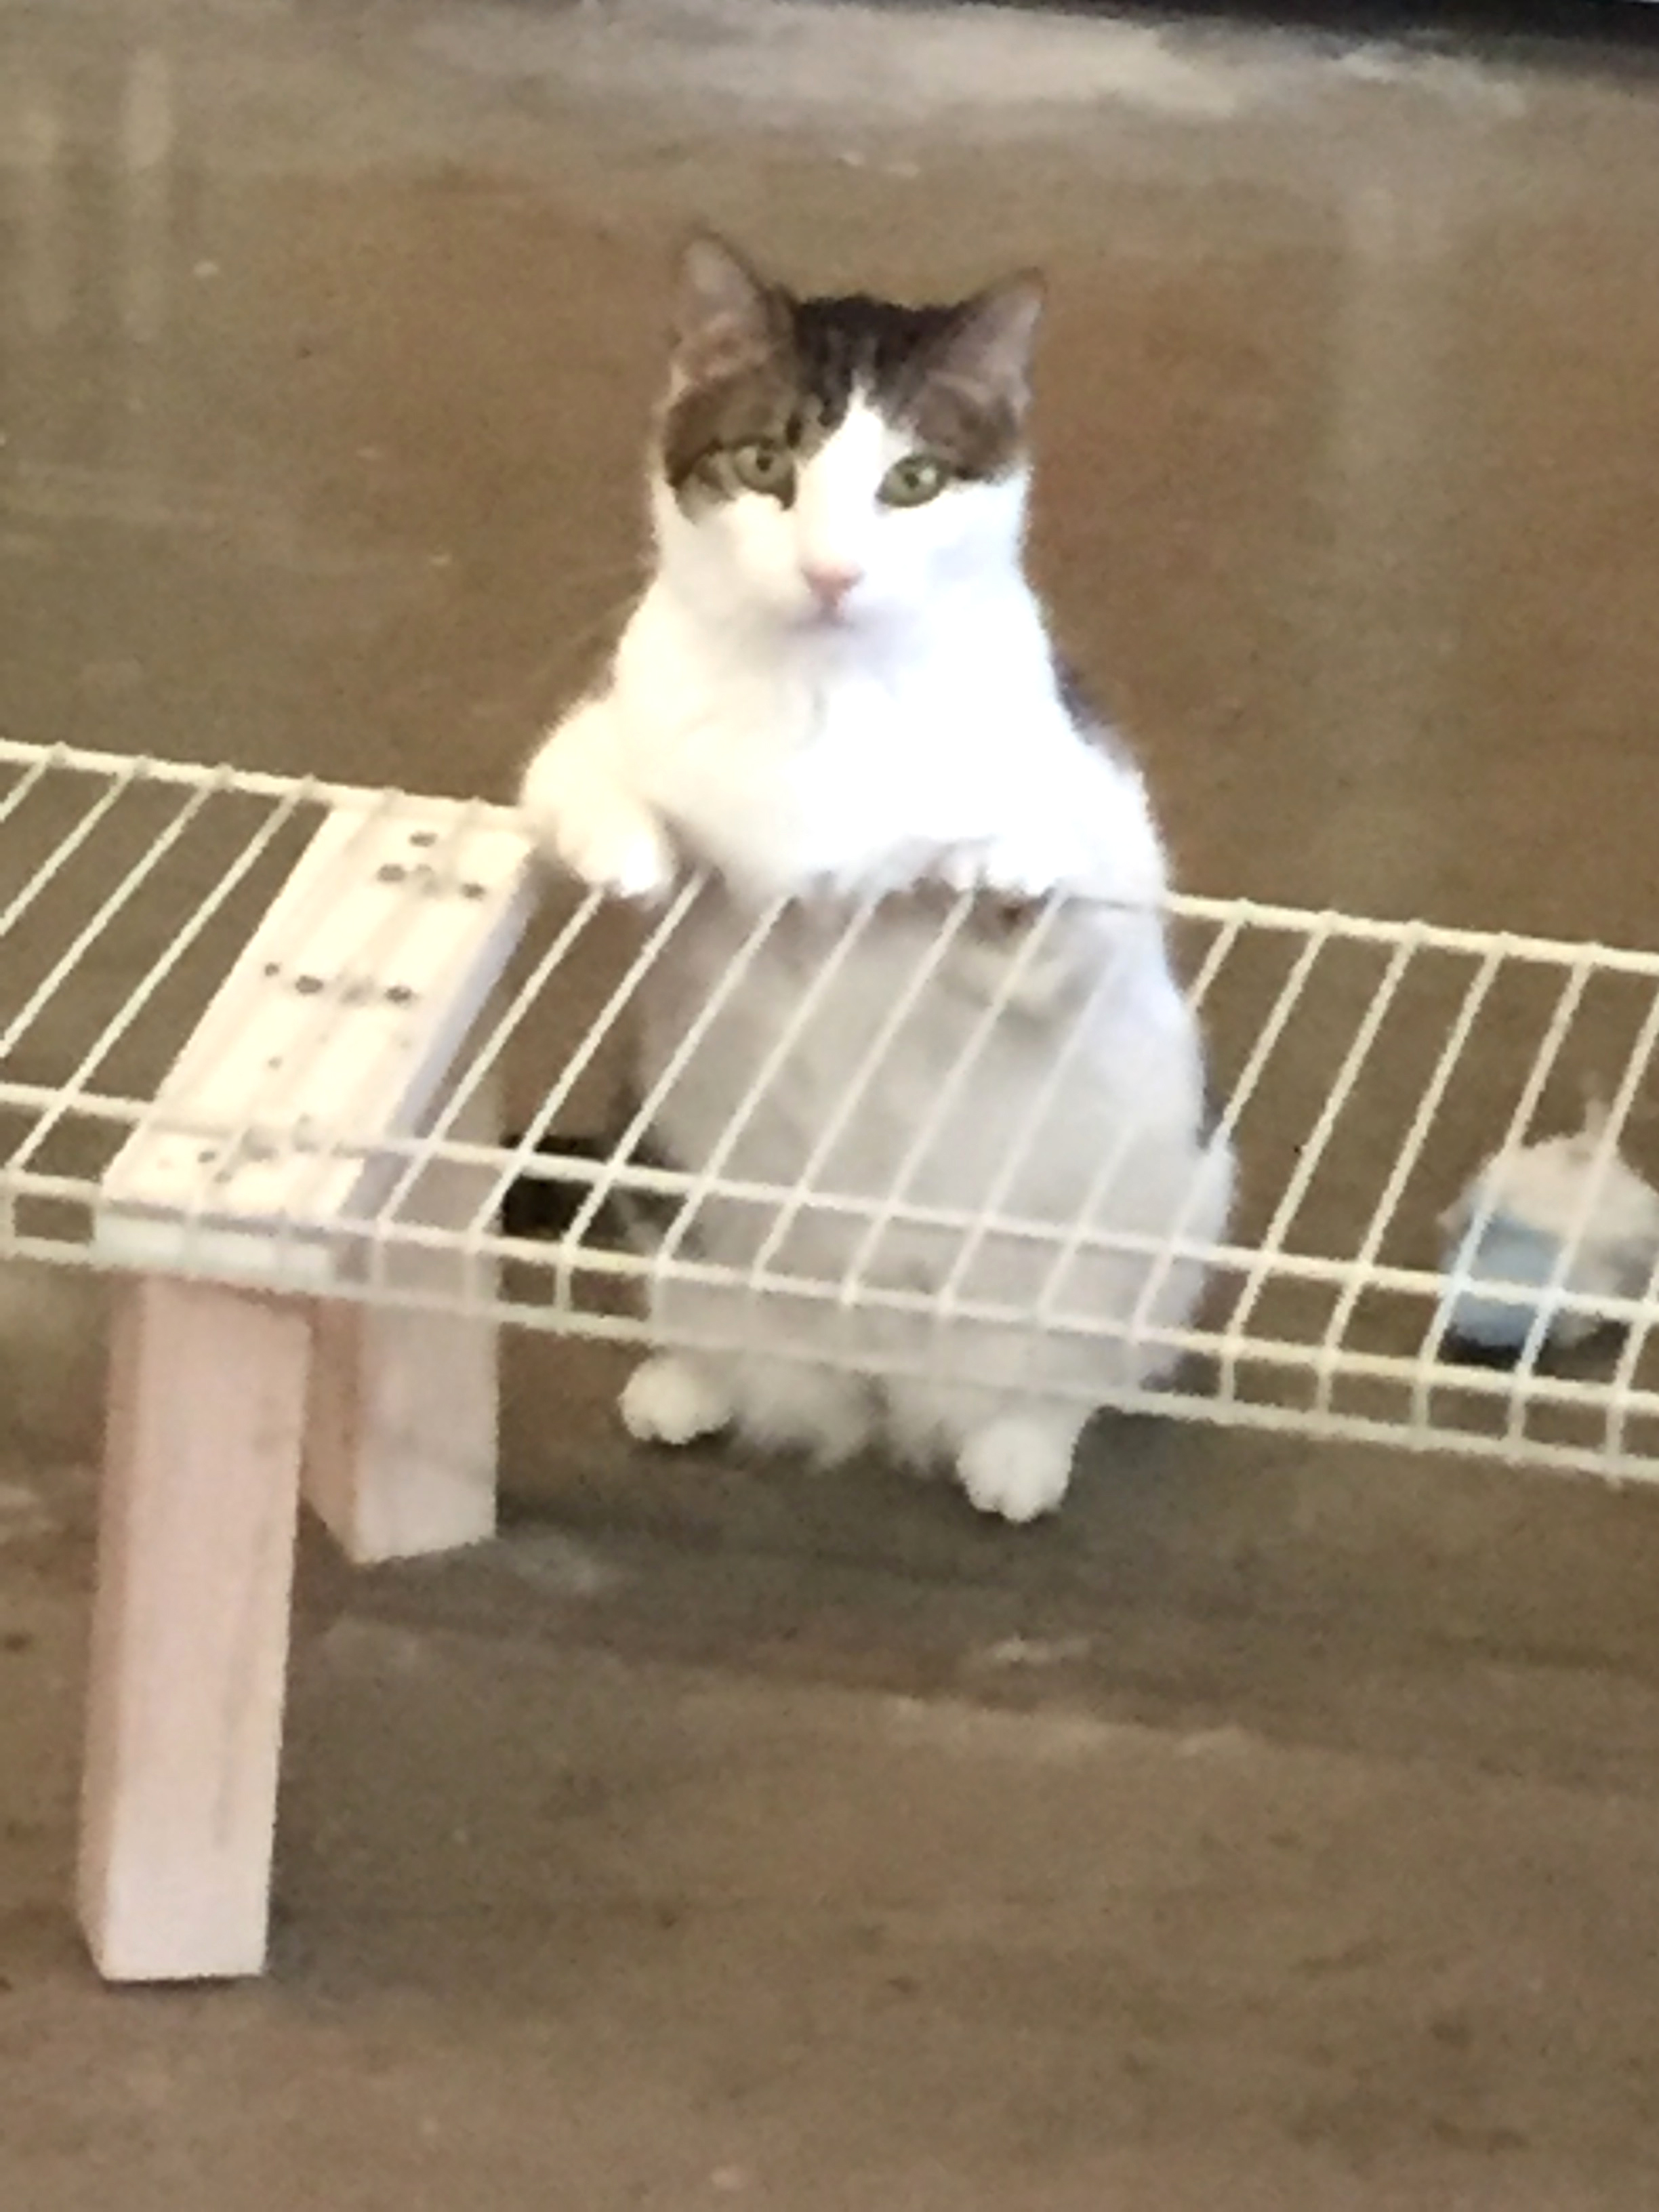 - Broderick has deformed front legs and paws. He is extremely shy requiring special handling.